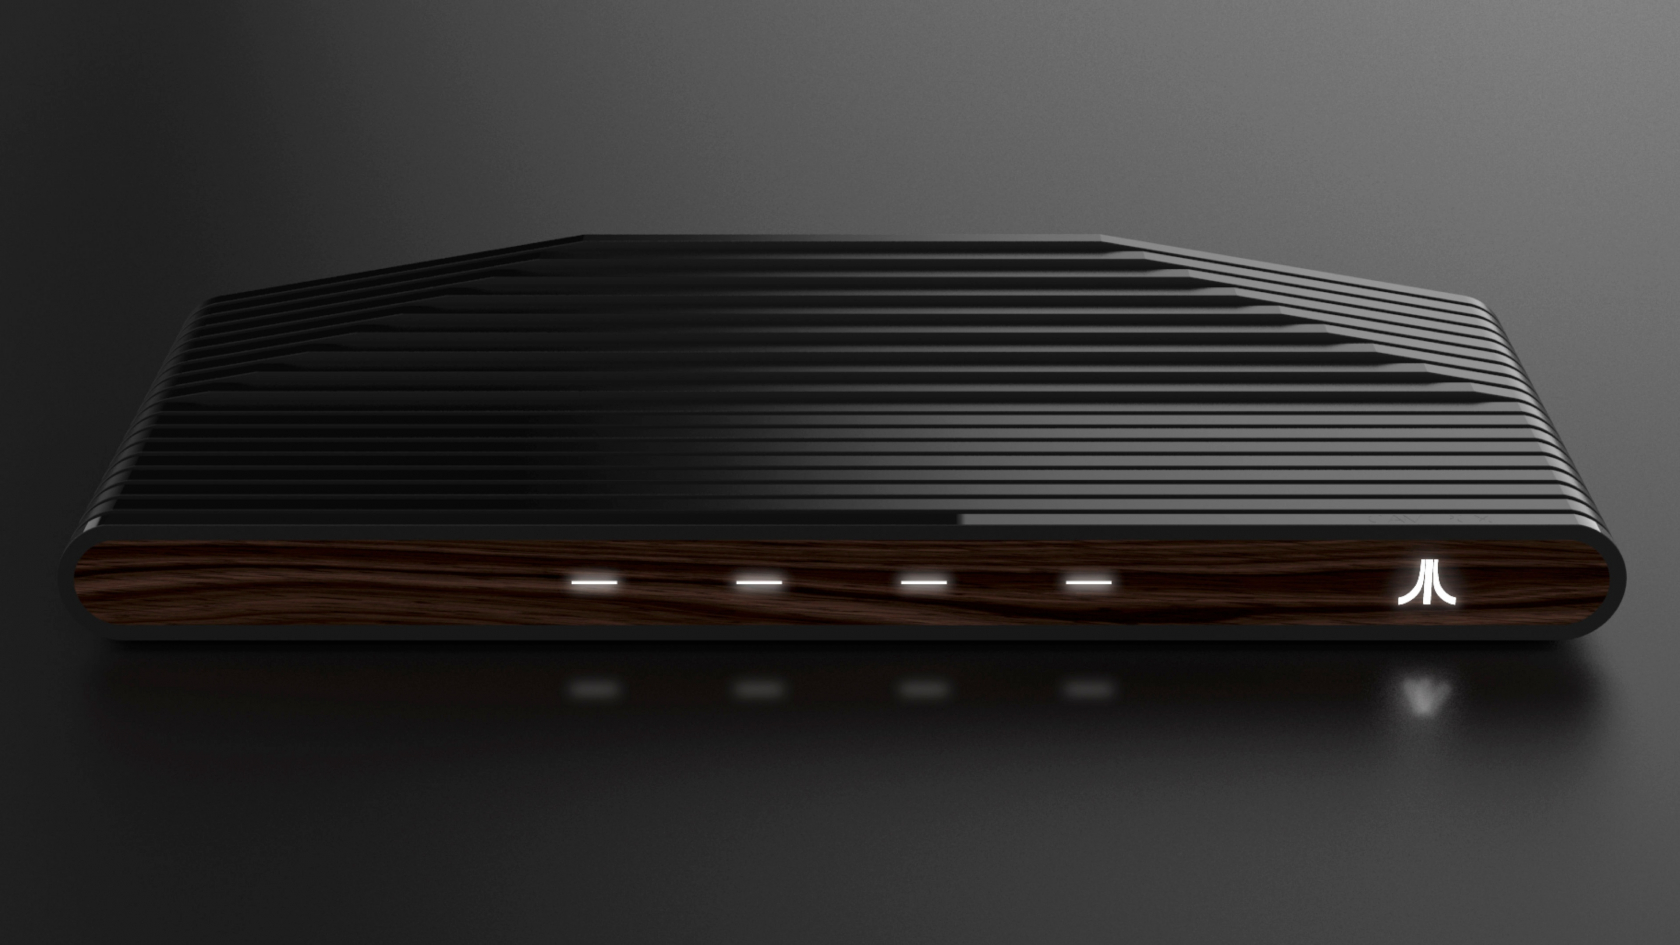 Atari delays launch of Ataribox console